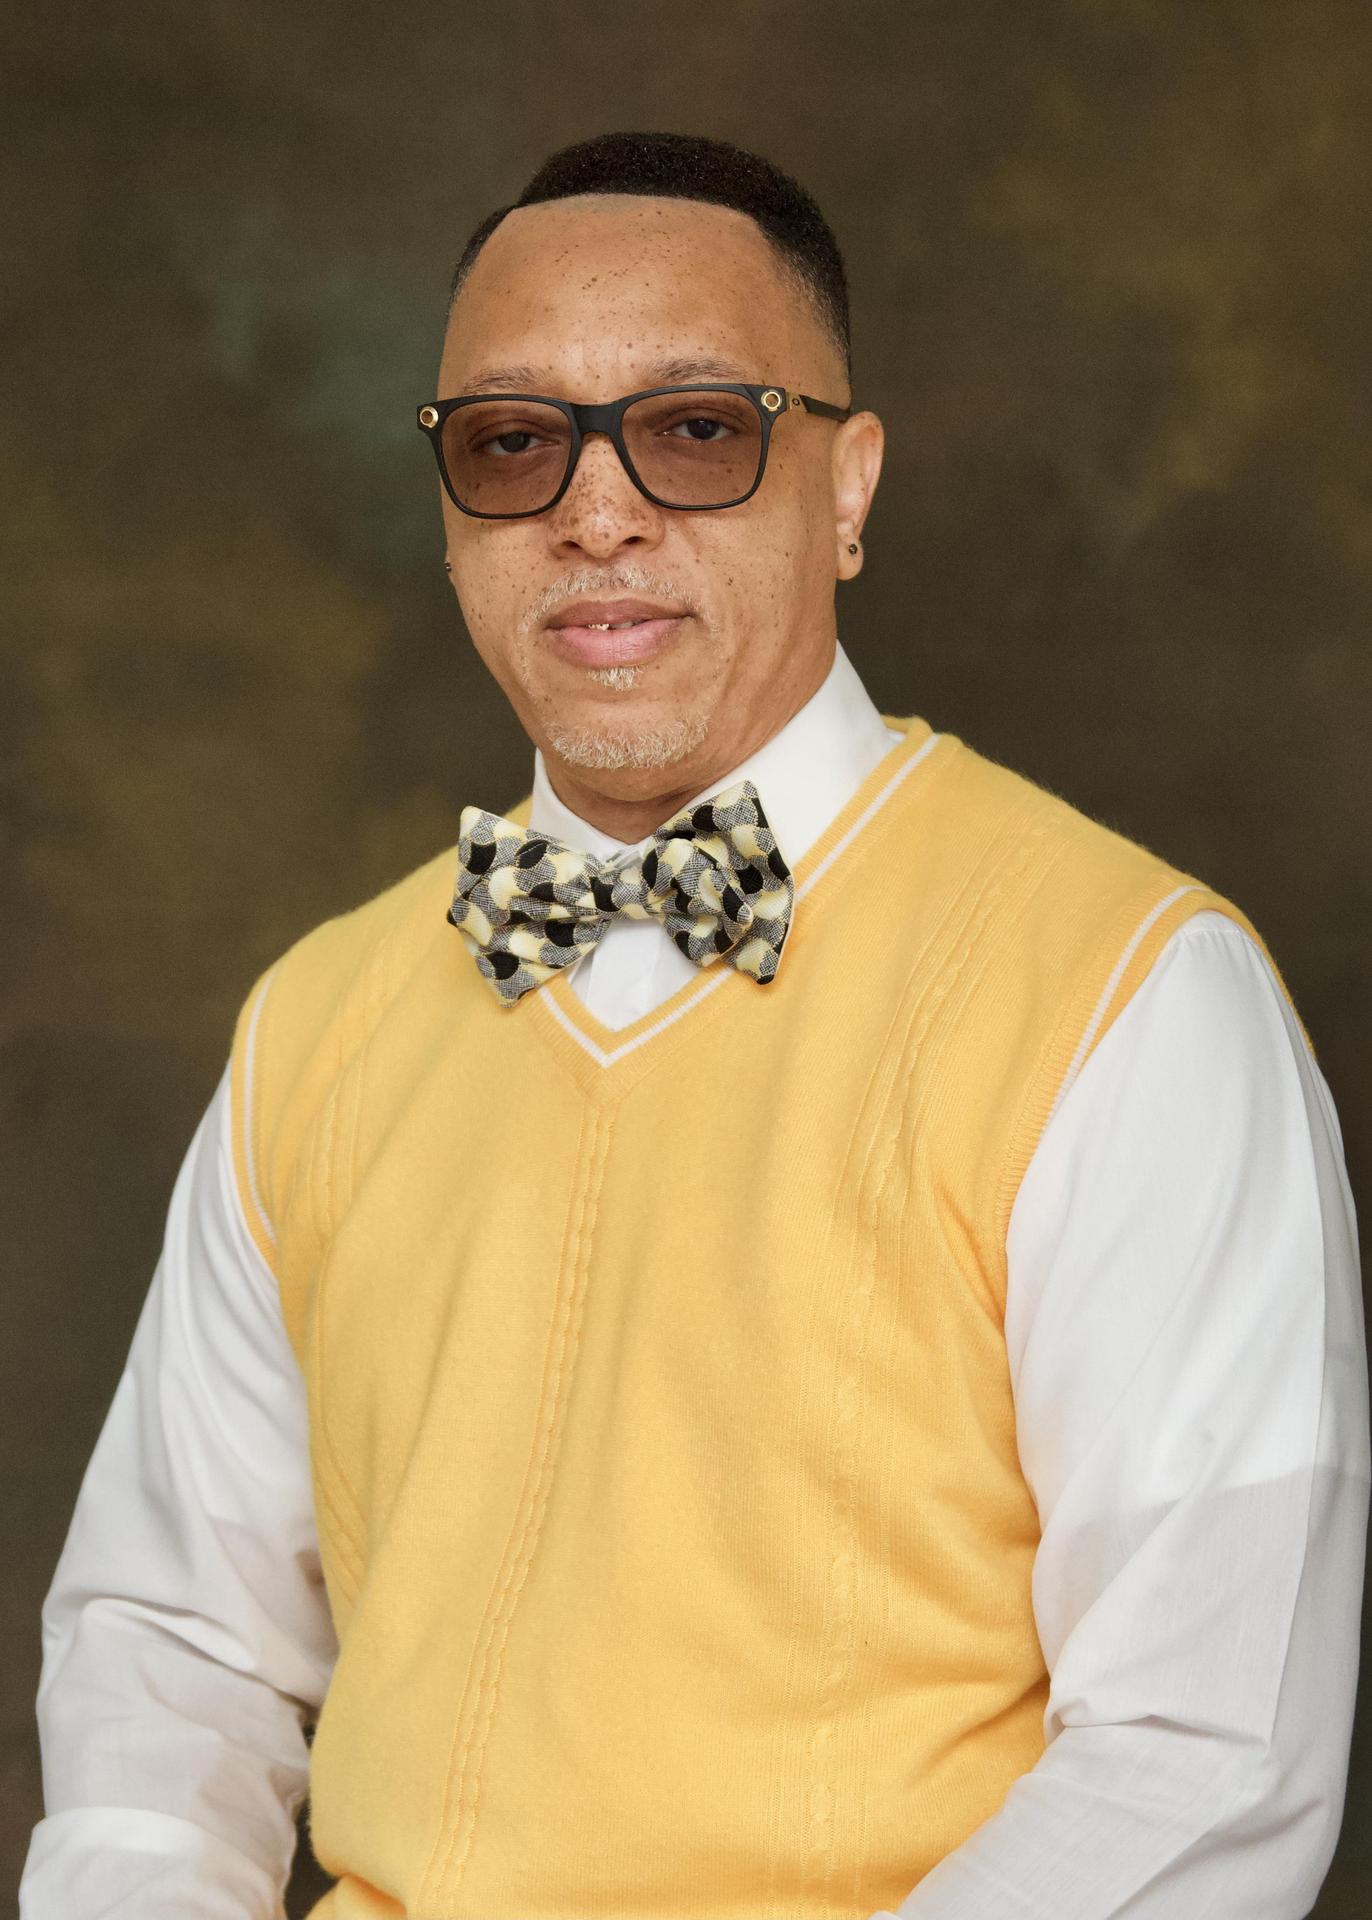 Mr. McKnight wearing a yellow sweater and glasses smiling.